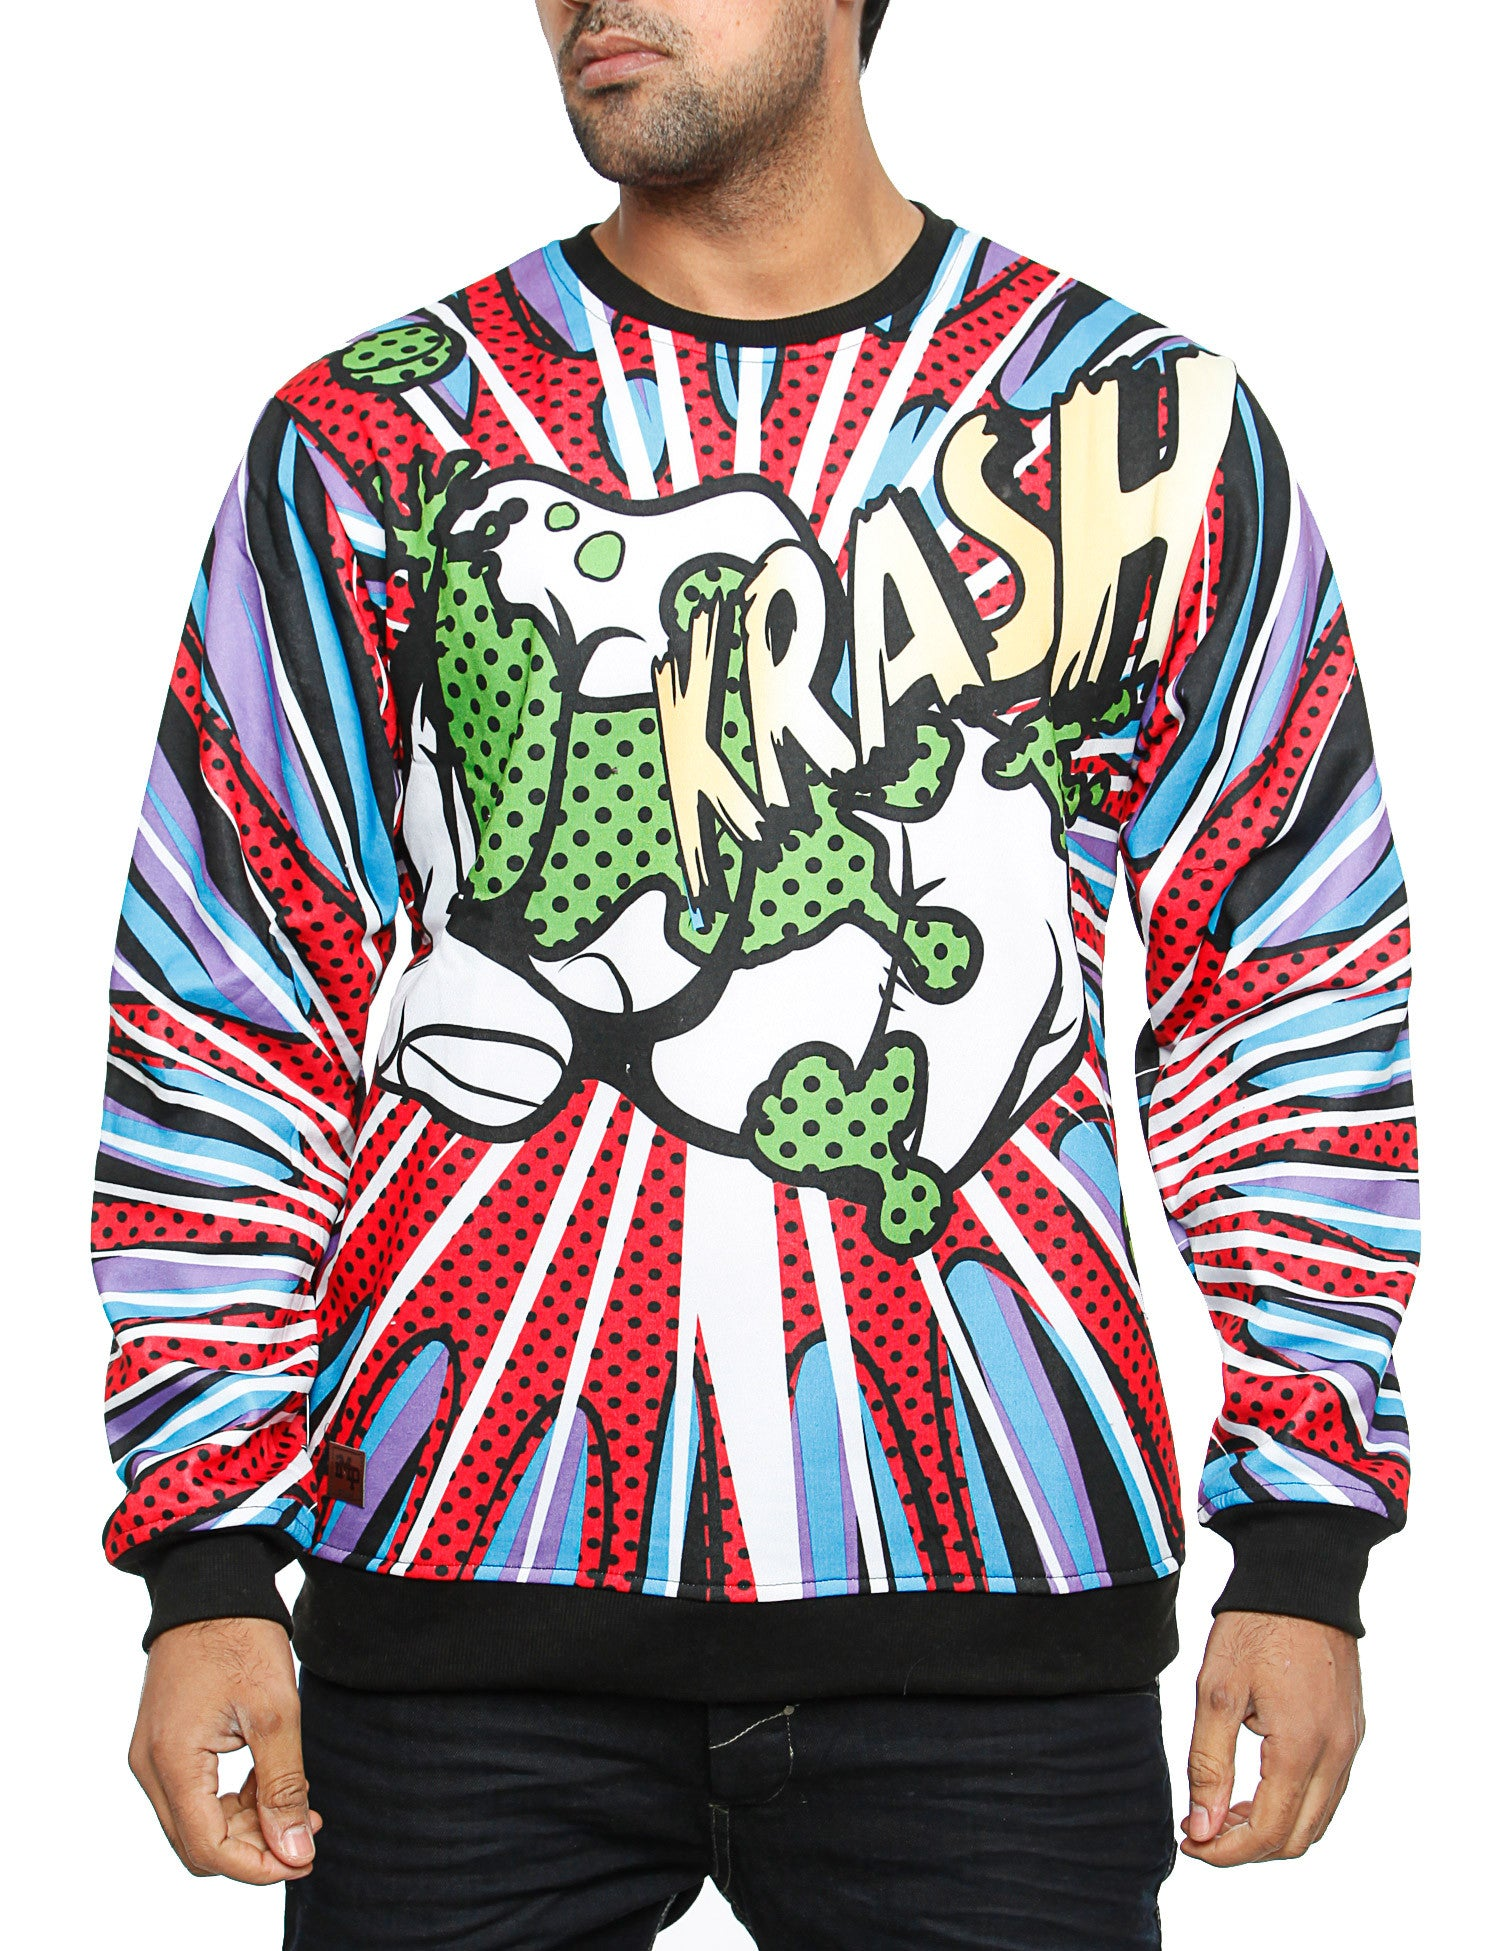 Imperious ´Krush´ All-Over Sweatshirt CS535 Red